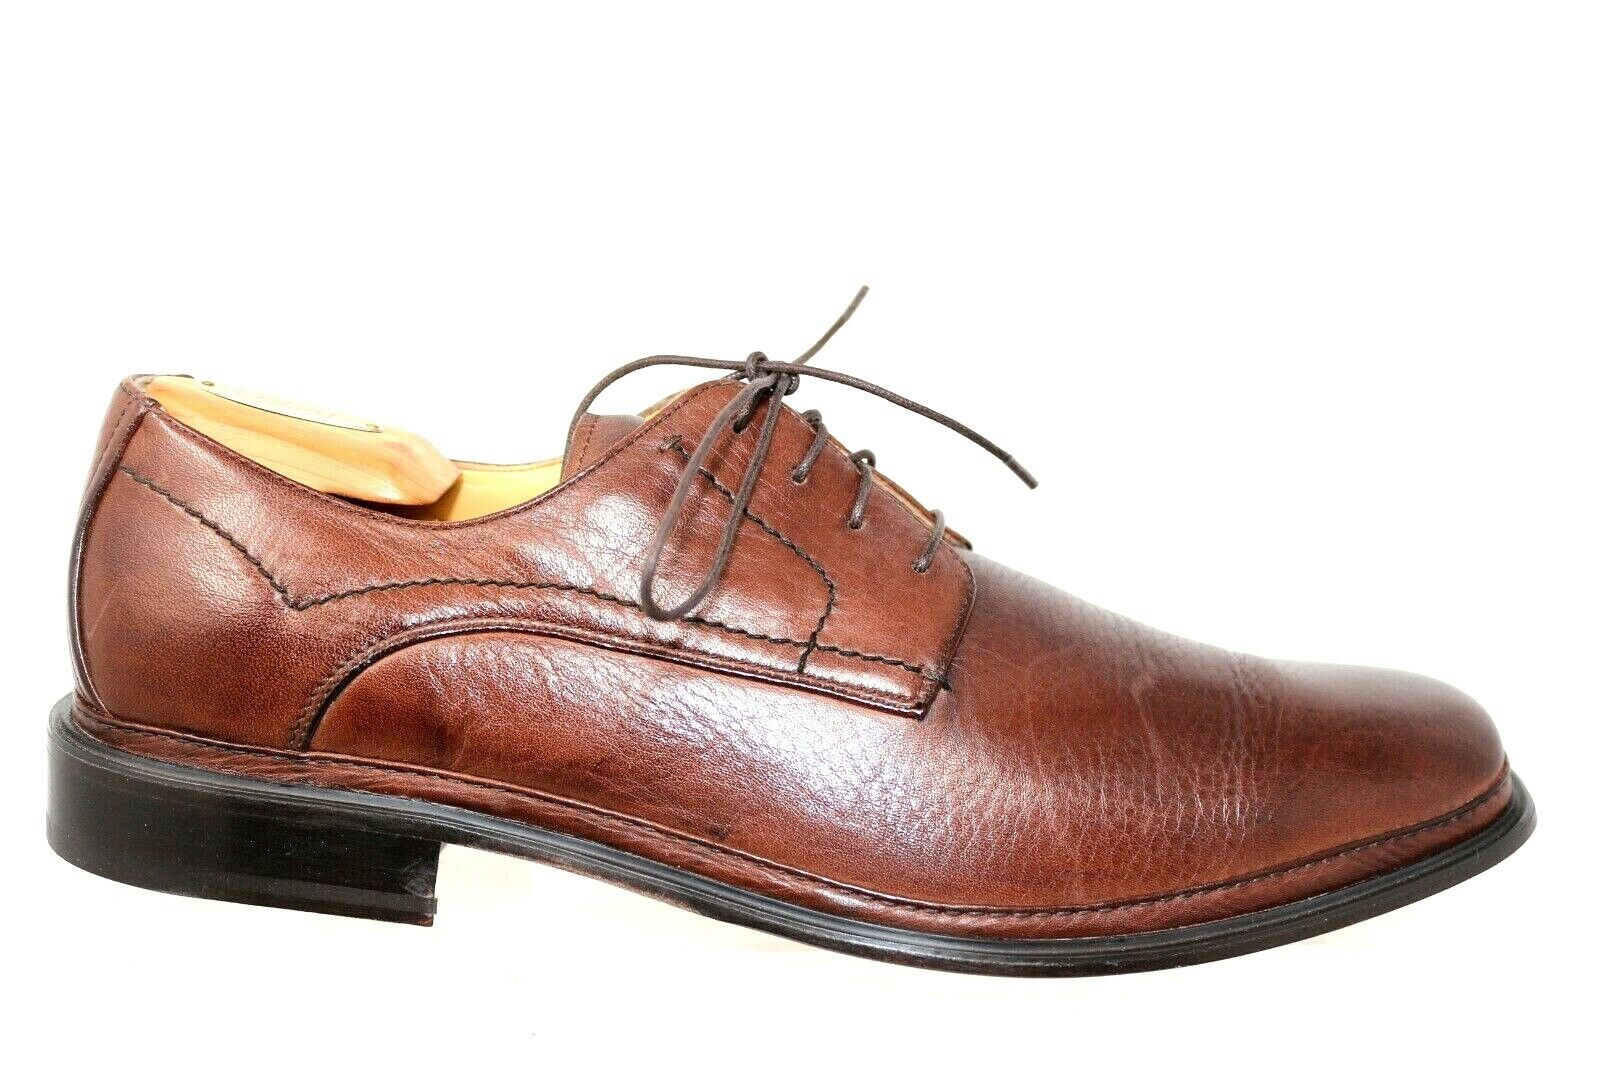 Brass Boot Brown Soft Leather Plain Toe Lace Up Leather Sole Oxfords Mens 13M